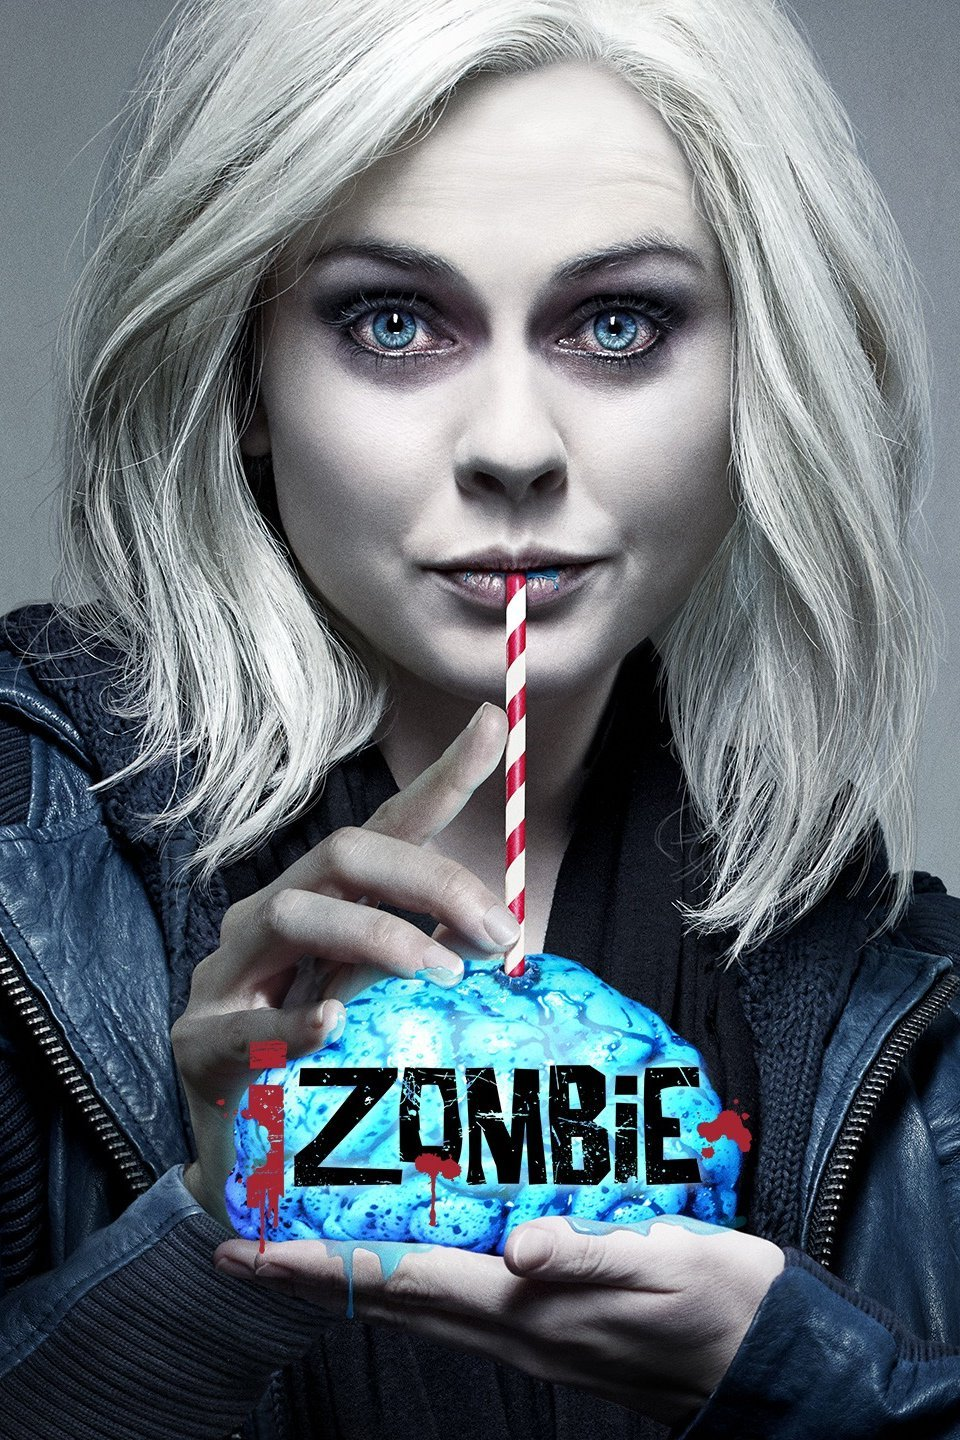 iZombie Season 4 Episode 4 Download WebRip 480p & 720p